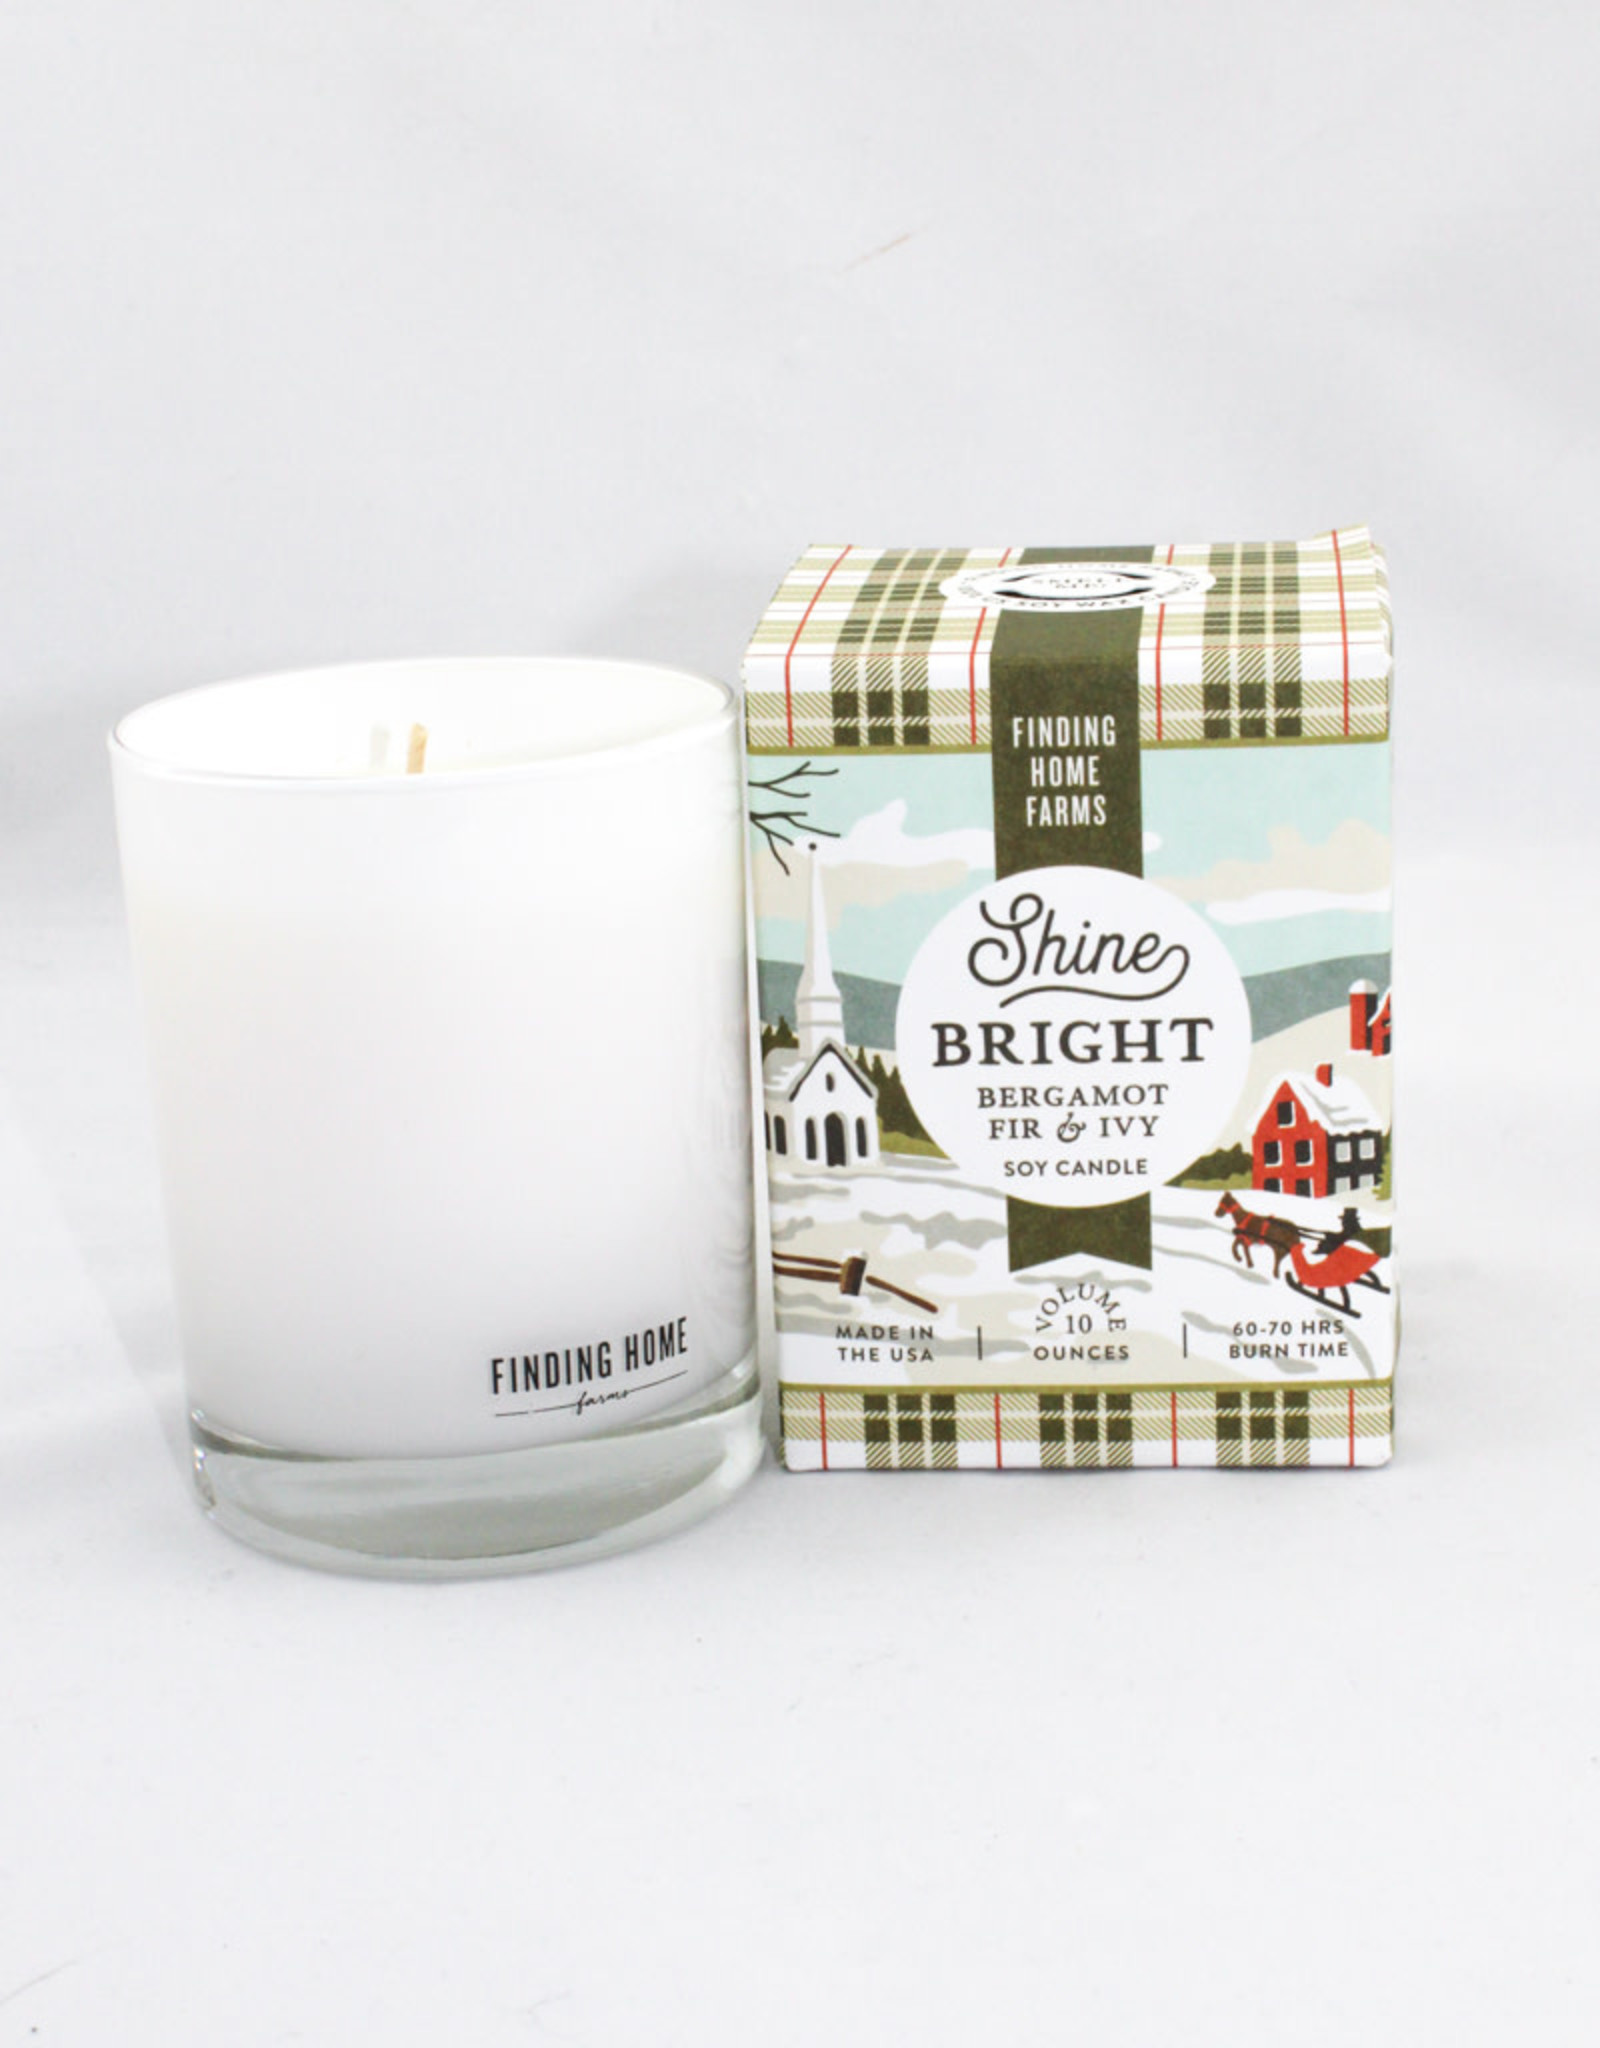 Finding Home Farms Shine Bright Boxed Candle - FHF7922